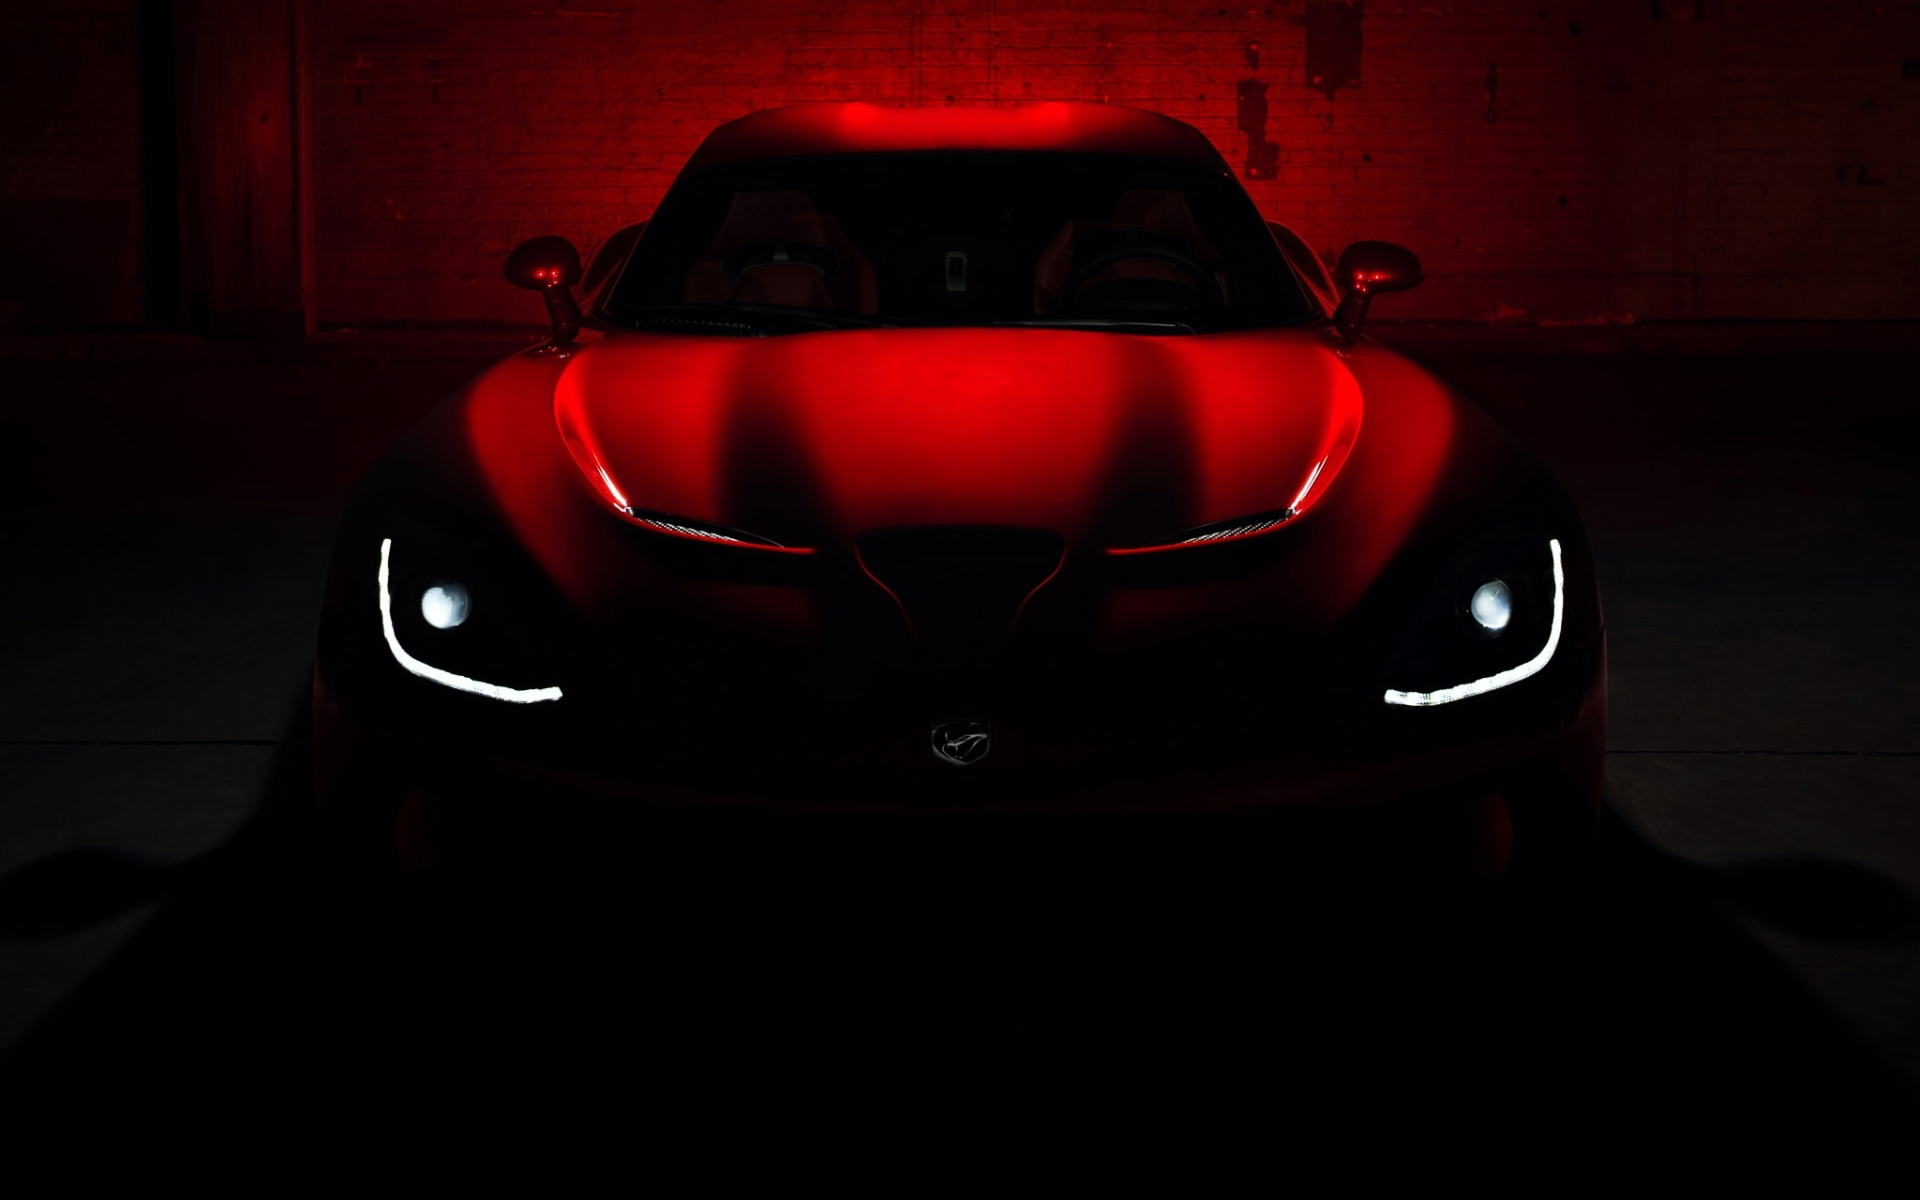 supercar wallpapers hd html with Dodge Srt Viper Gts Vehicles Cars Concept Red Glow Dark Lights Supercar on 525885 15 as well 106342 together with Fondos De Pantalla Coches likewise Lamaserati Hyper Car Hd Wallpapers T93520 likewise 312 Koenigsegg Agera One.